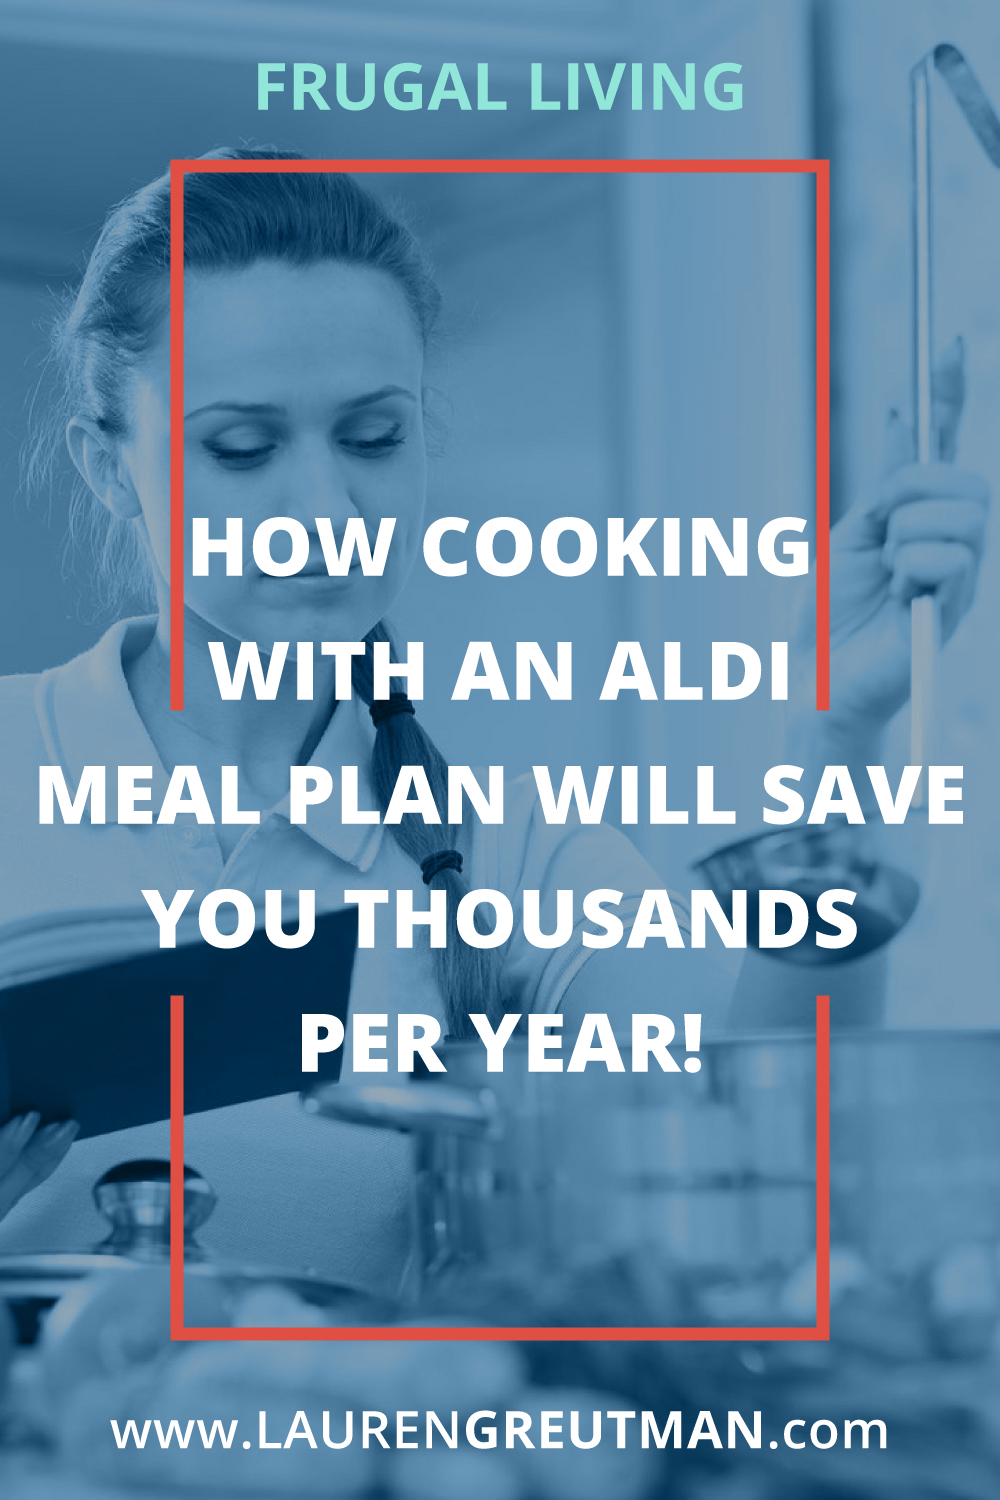 Take out 20 freezer bags, then throw food from ALDI in them that only cost you $150.  Then throw in the freezer. That is how simple an ALDI meal plan is!